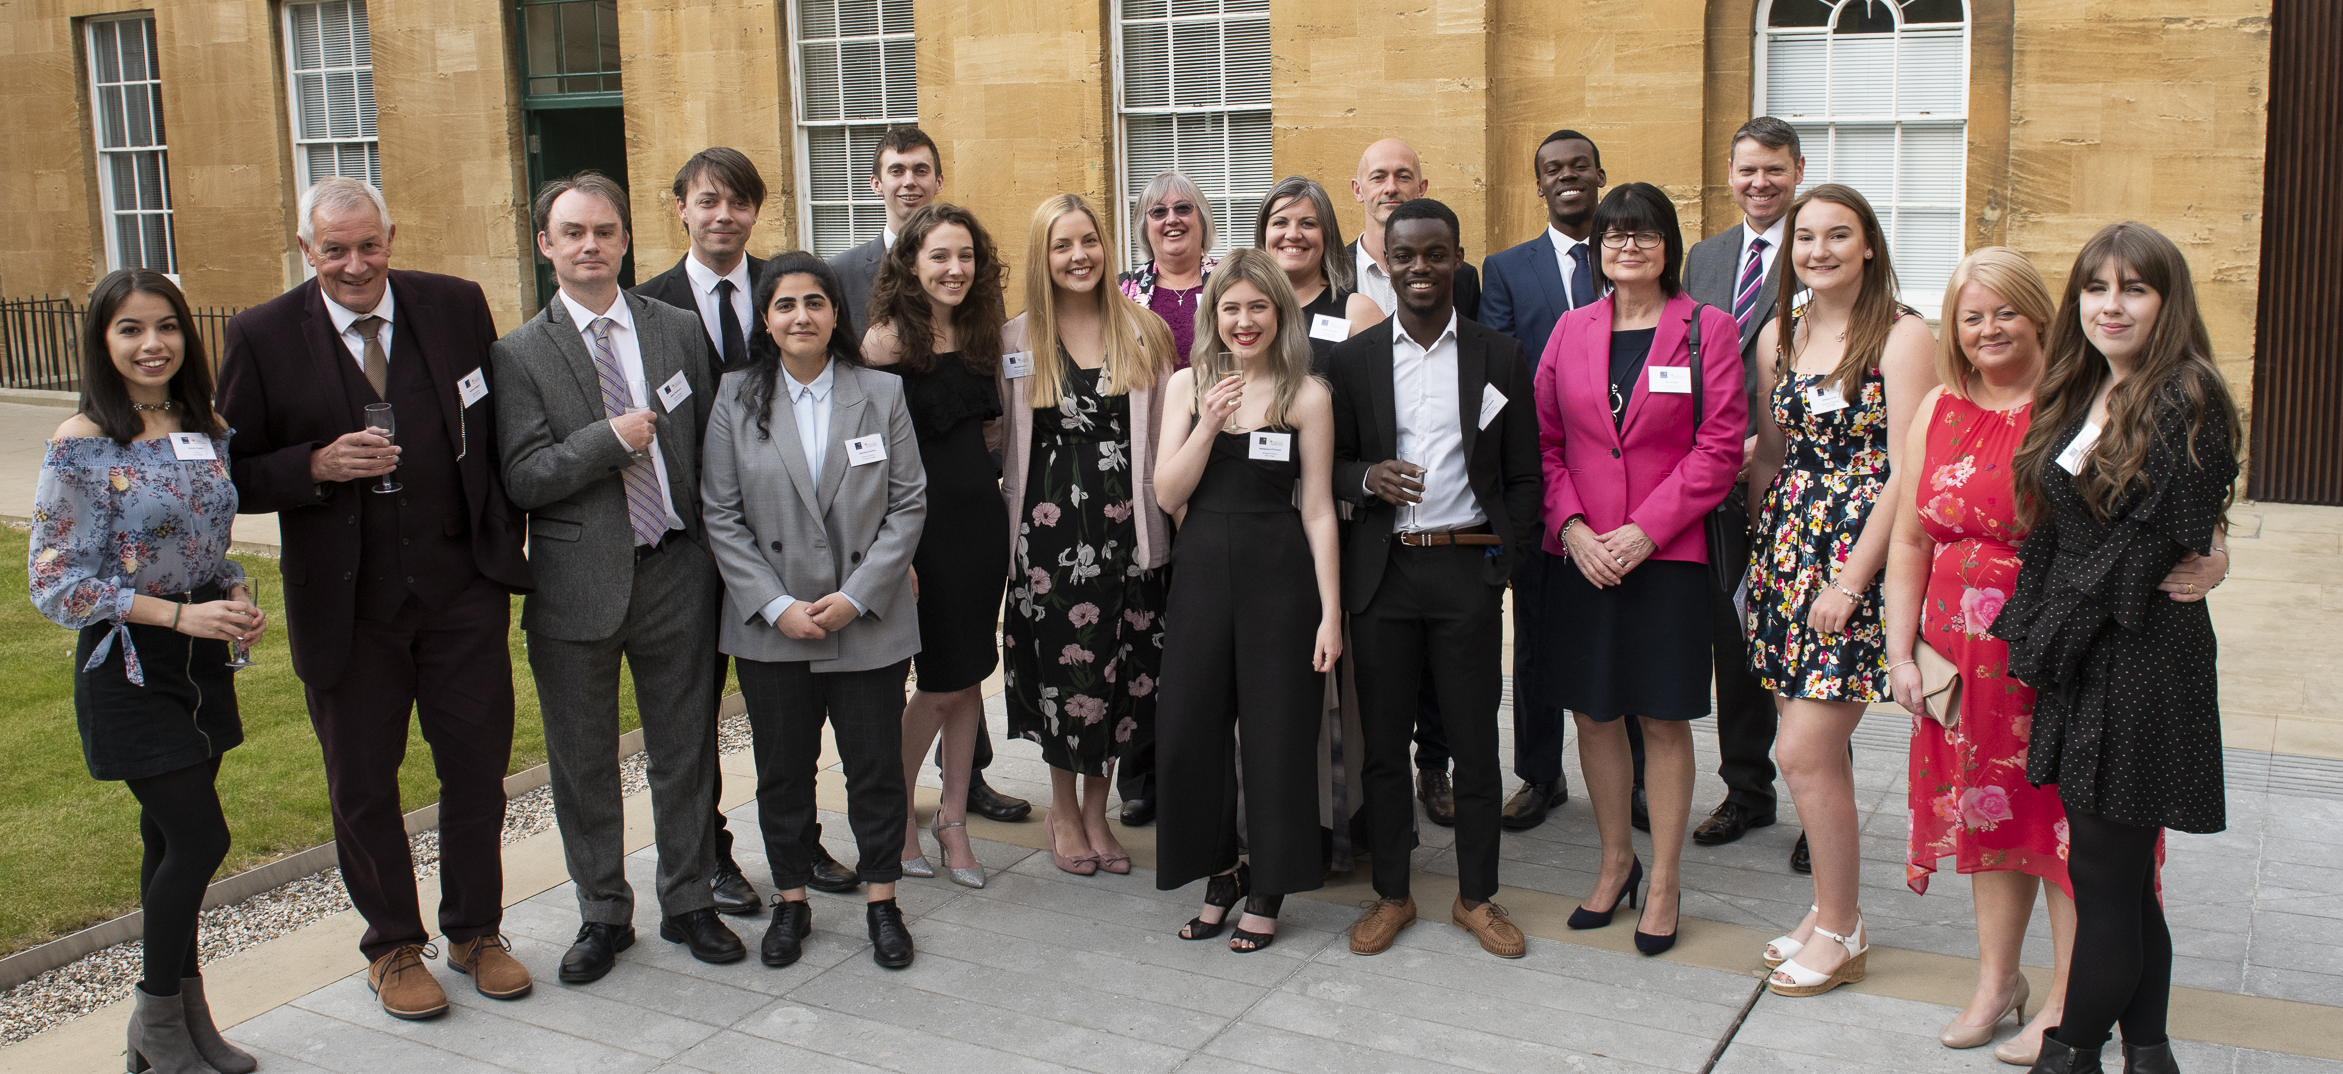 Oxford honours 'Inspirational' state school teachers